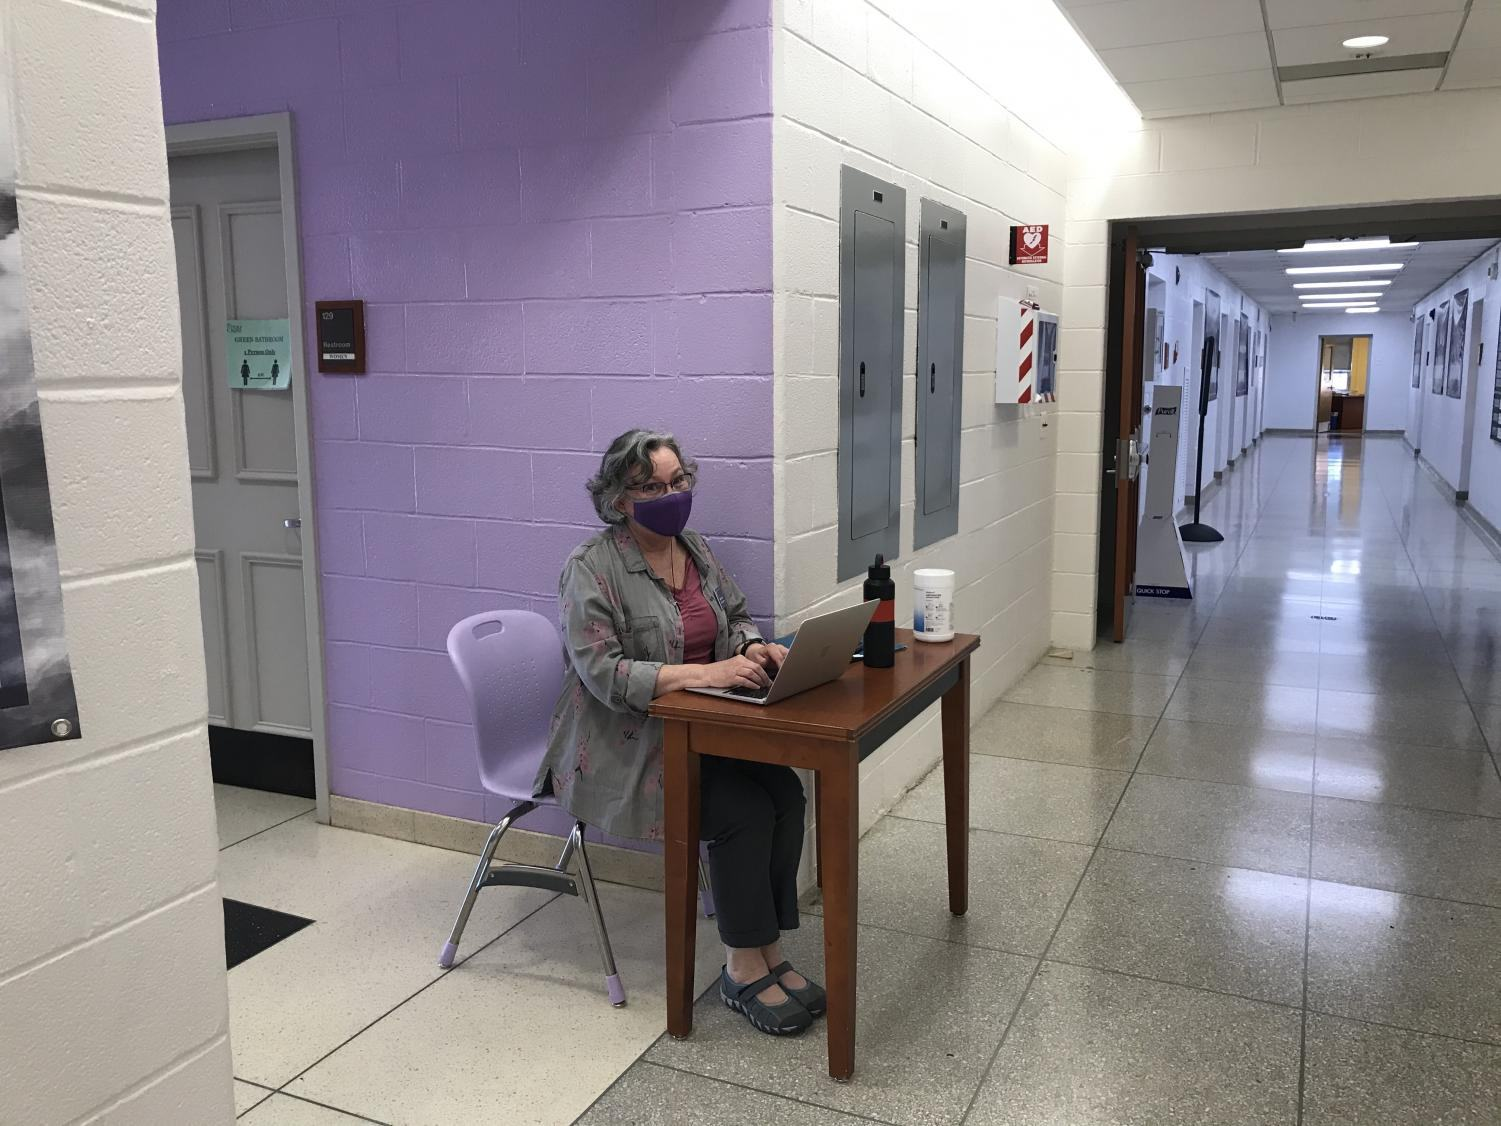 Science teacher Sally Craven seated outside the gym bathroom to make sure people don't exceed the limits.